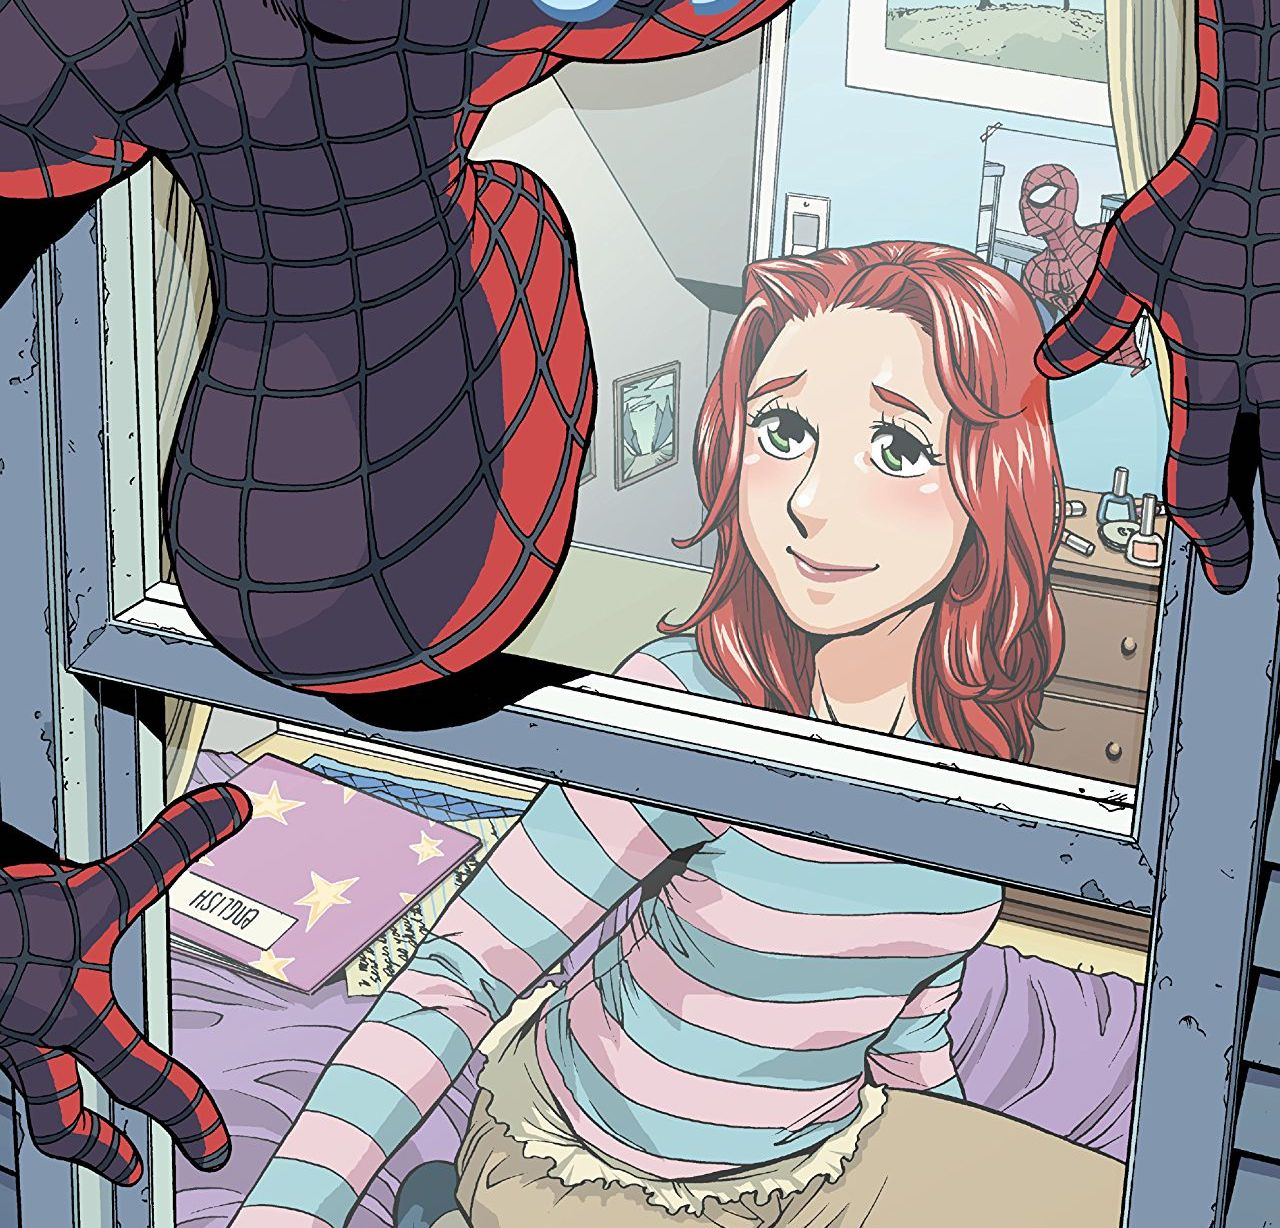 Spider-Man Loves Mary Jane: The Unexpected Thing Review